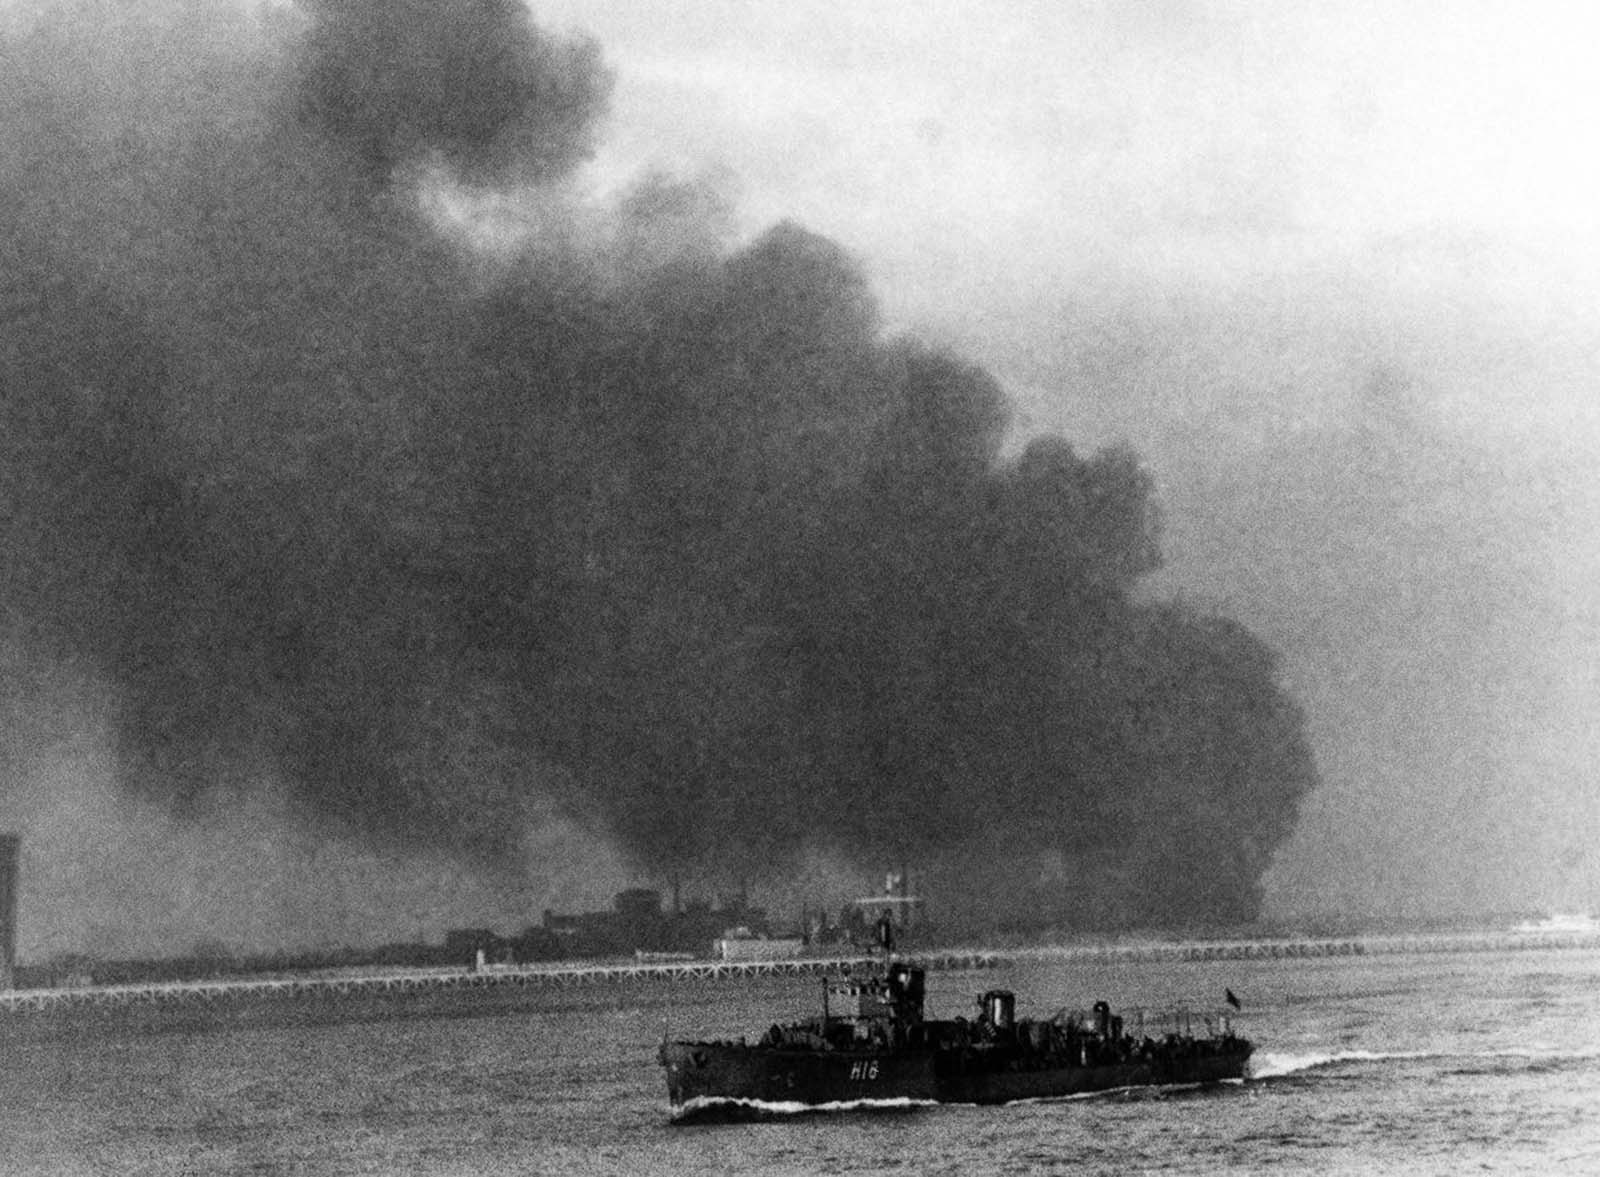 A British destroyer carries evacuees home while Dunkirk burns and the rearguard continues to fight.